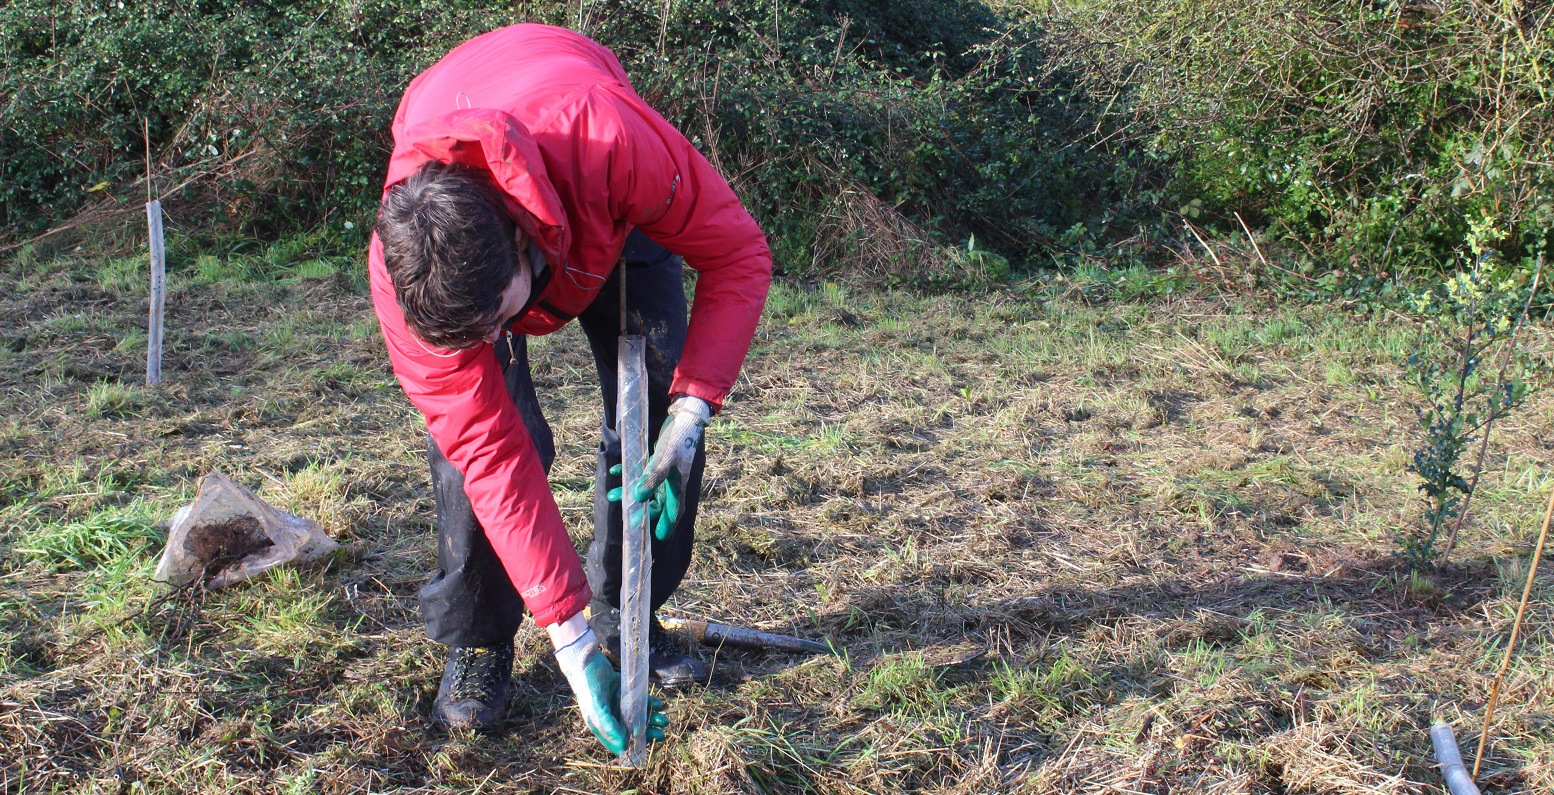 Bristol Energy employee planting a tree